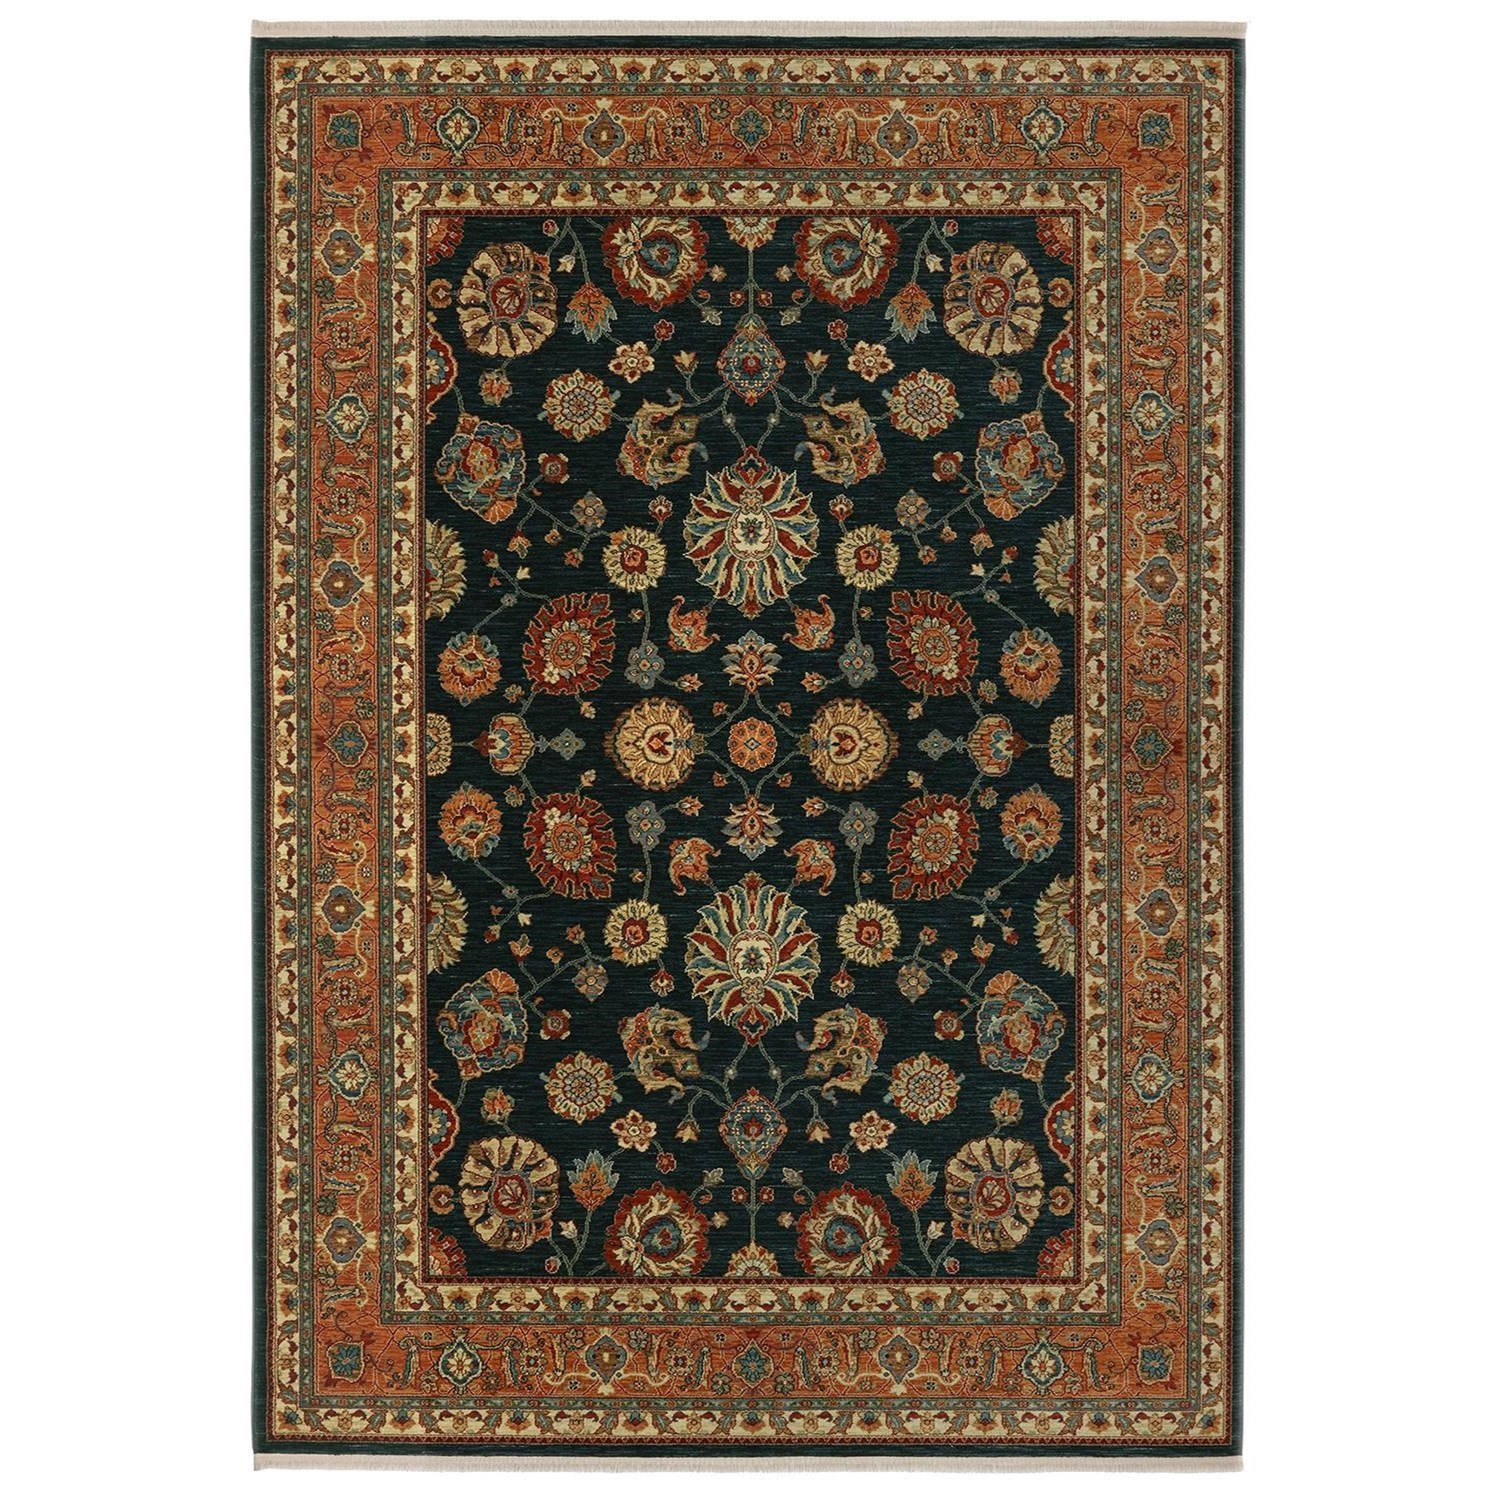 Sovereign 8'8x12' Sultana Navy Rug by Karastan Rugs at Alison Craig Home Furnishings